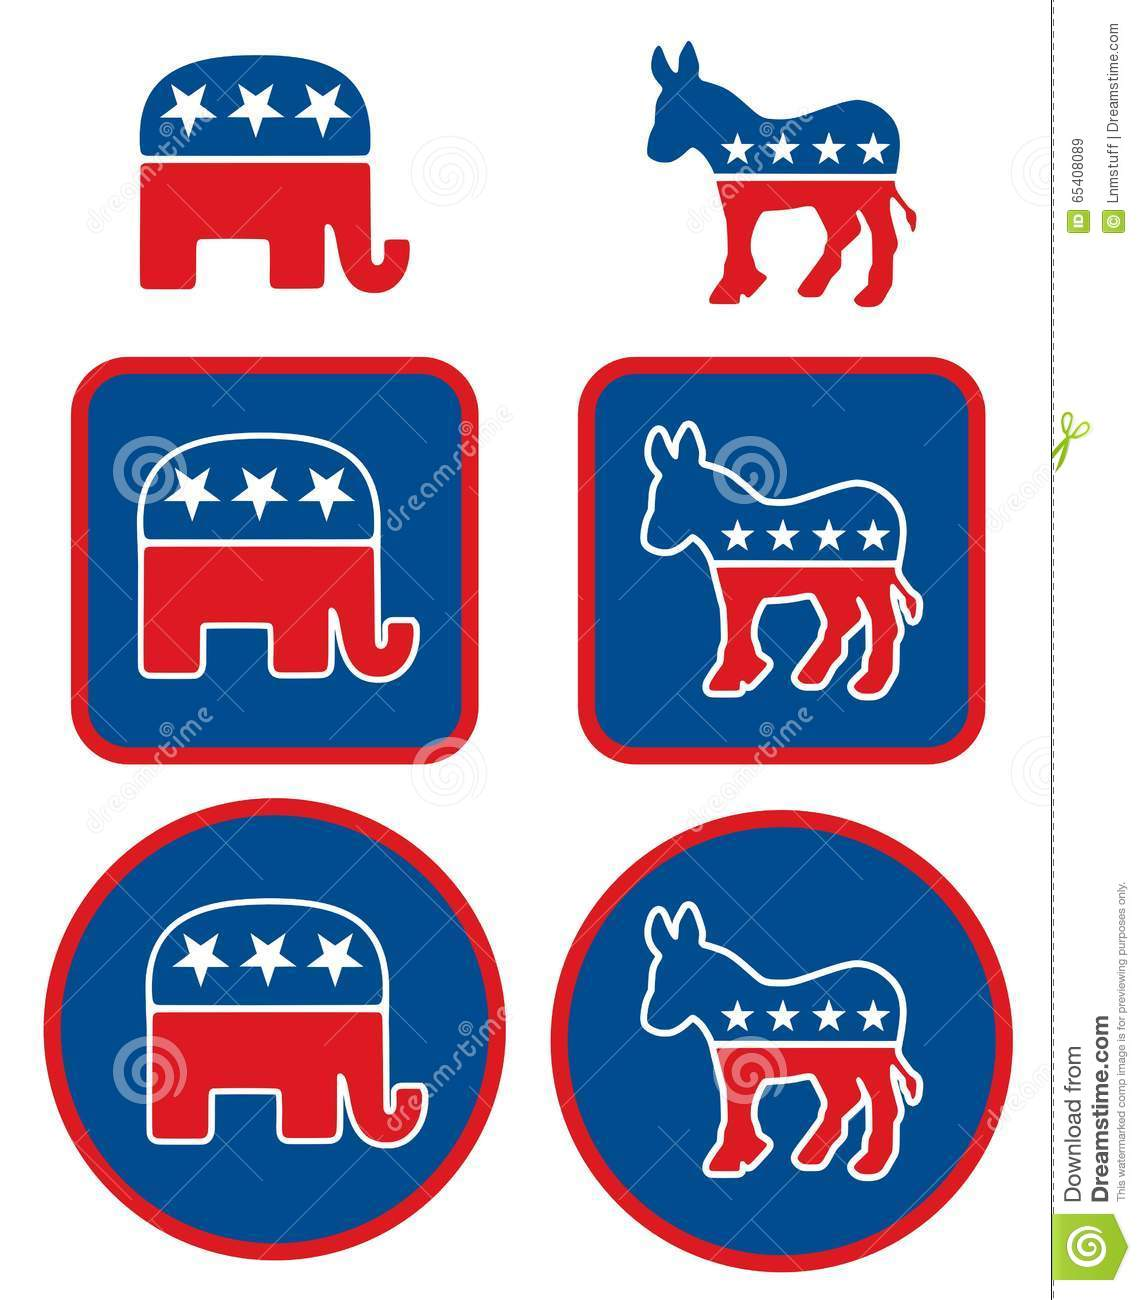 compartison of united states political parties democratic party and the republican party The republican party in the united states doesn't really have any counterpart in the canadian system the democratic party is also slightly further right.